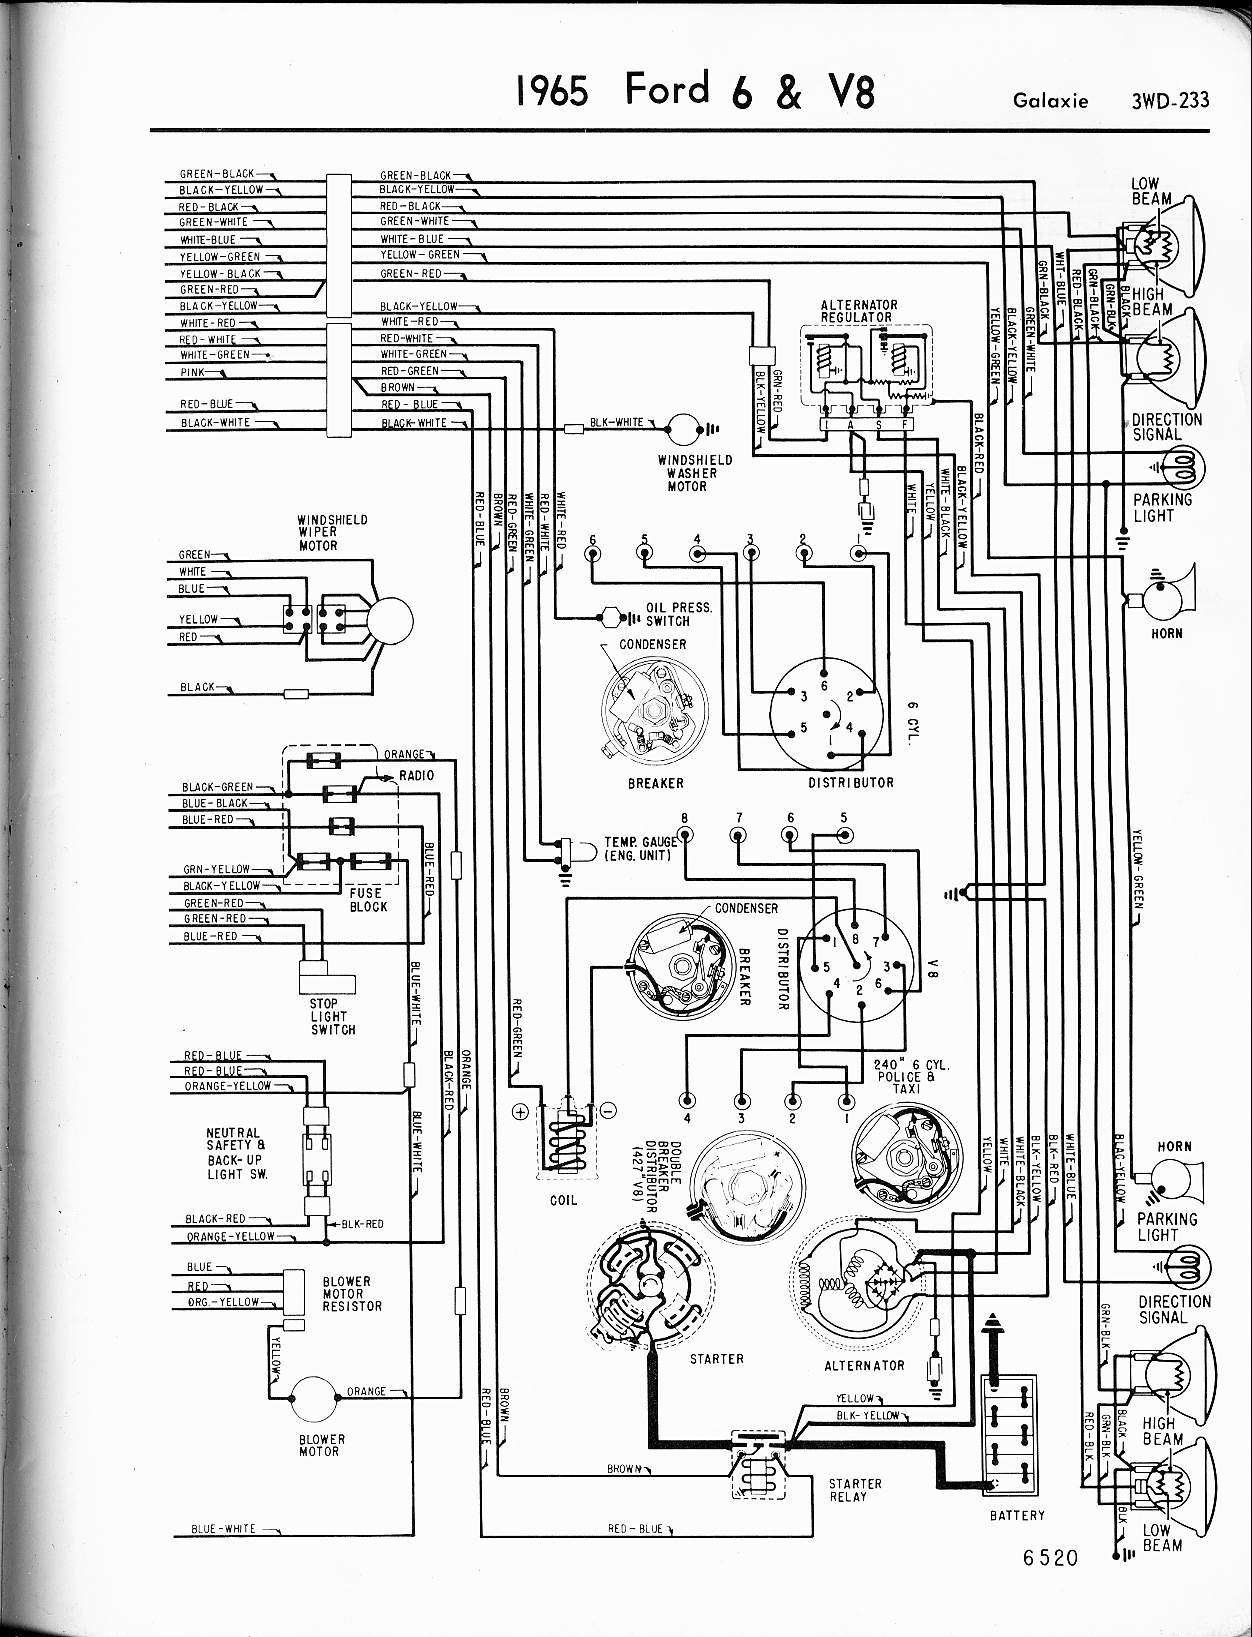 wiring harness diagram for 1977 ford f 150 diagram for 94 ford f 150 wiper wiring harness on system 57 65 ford wiring diagrams